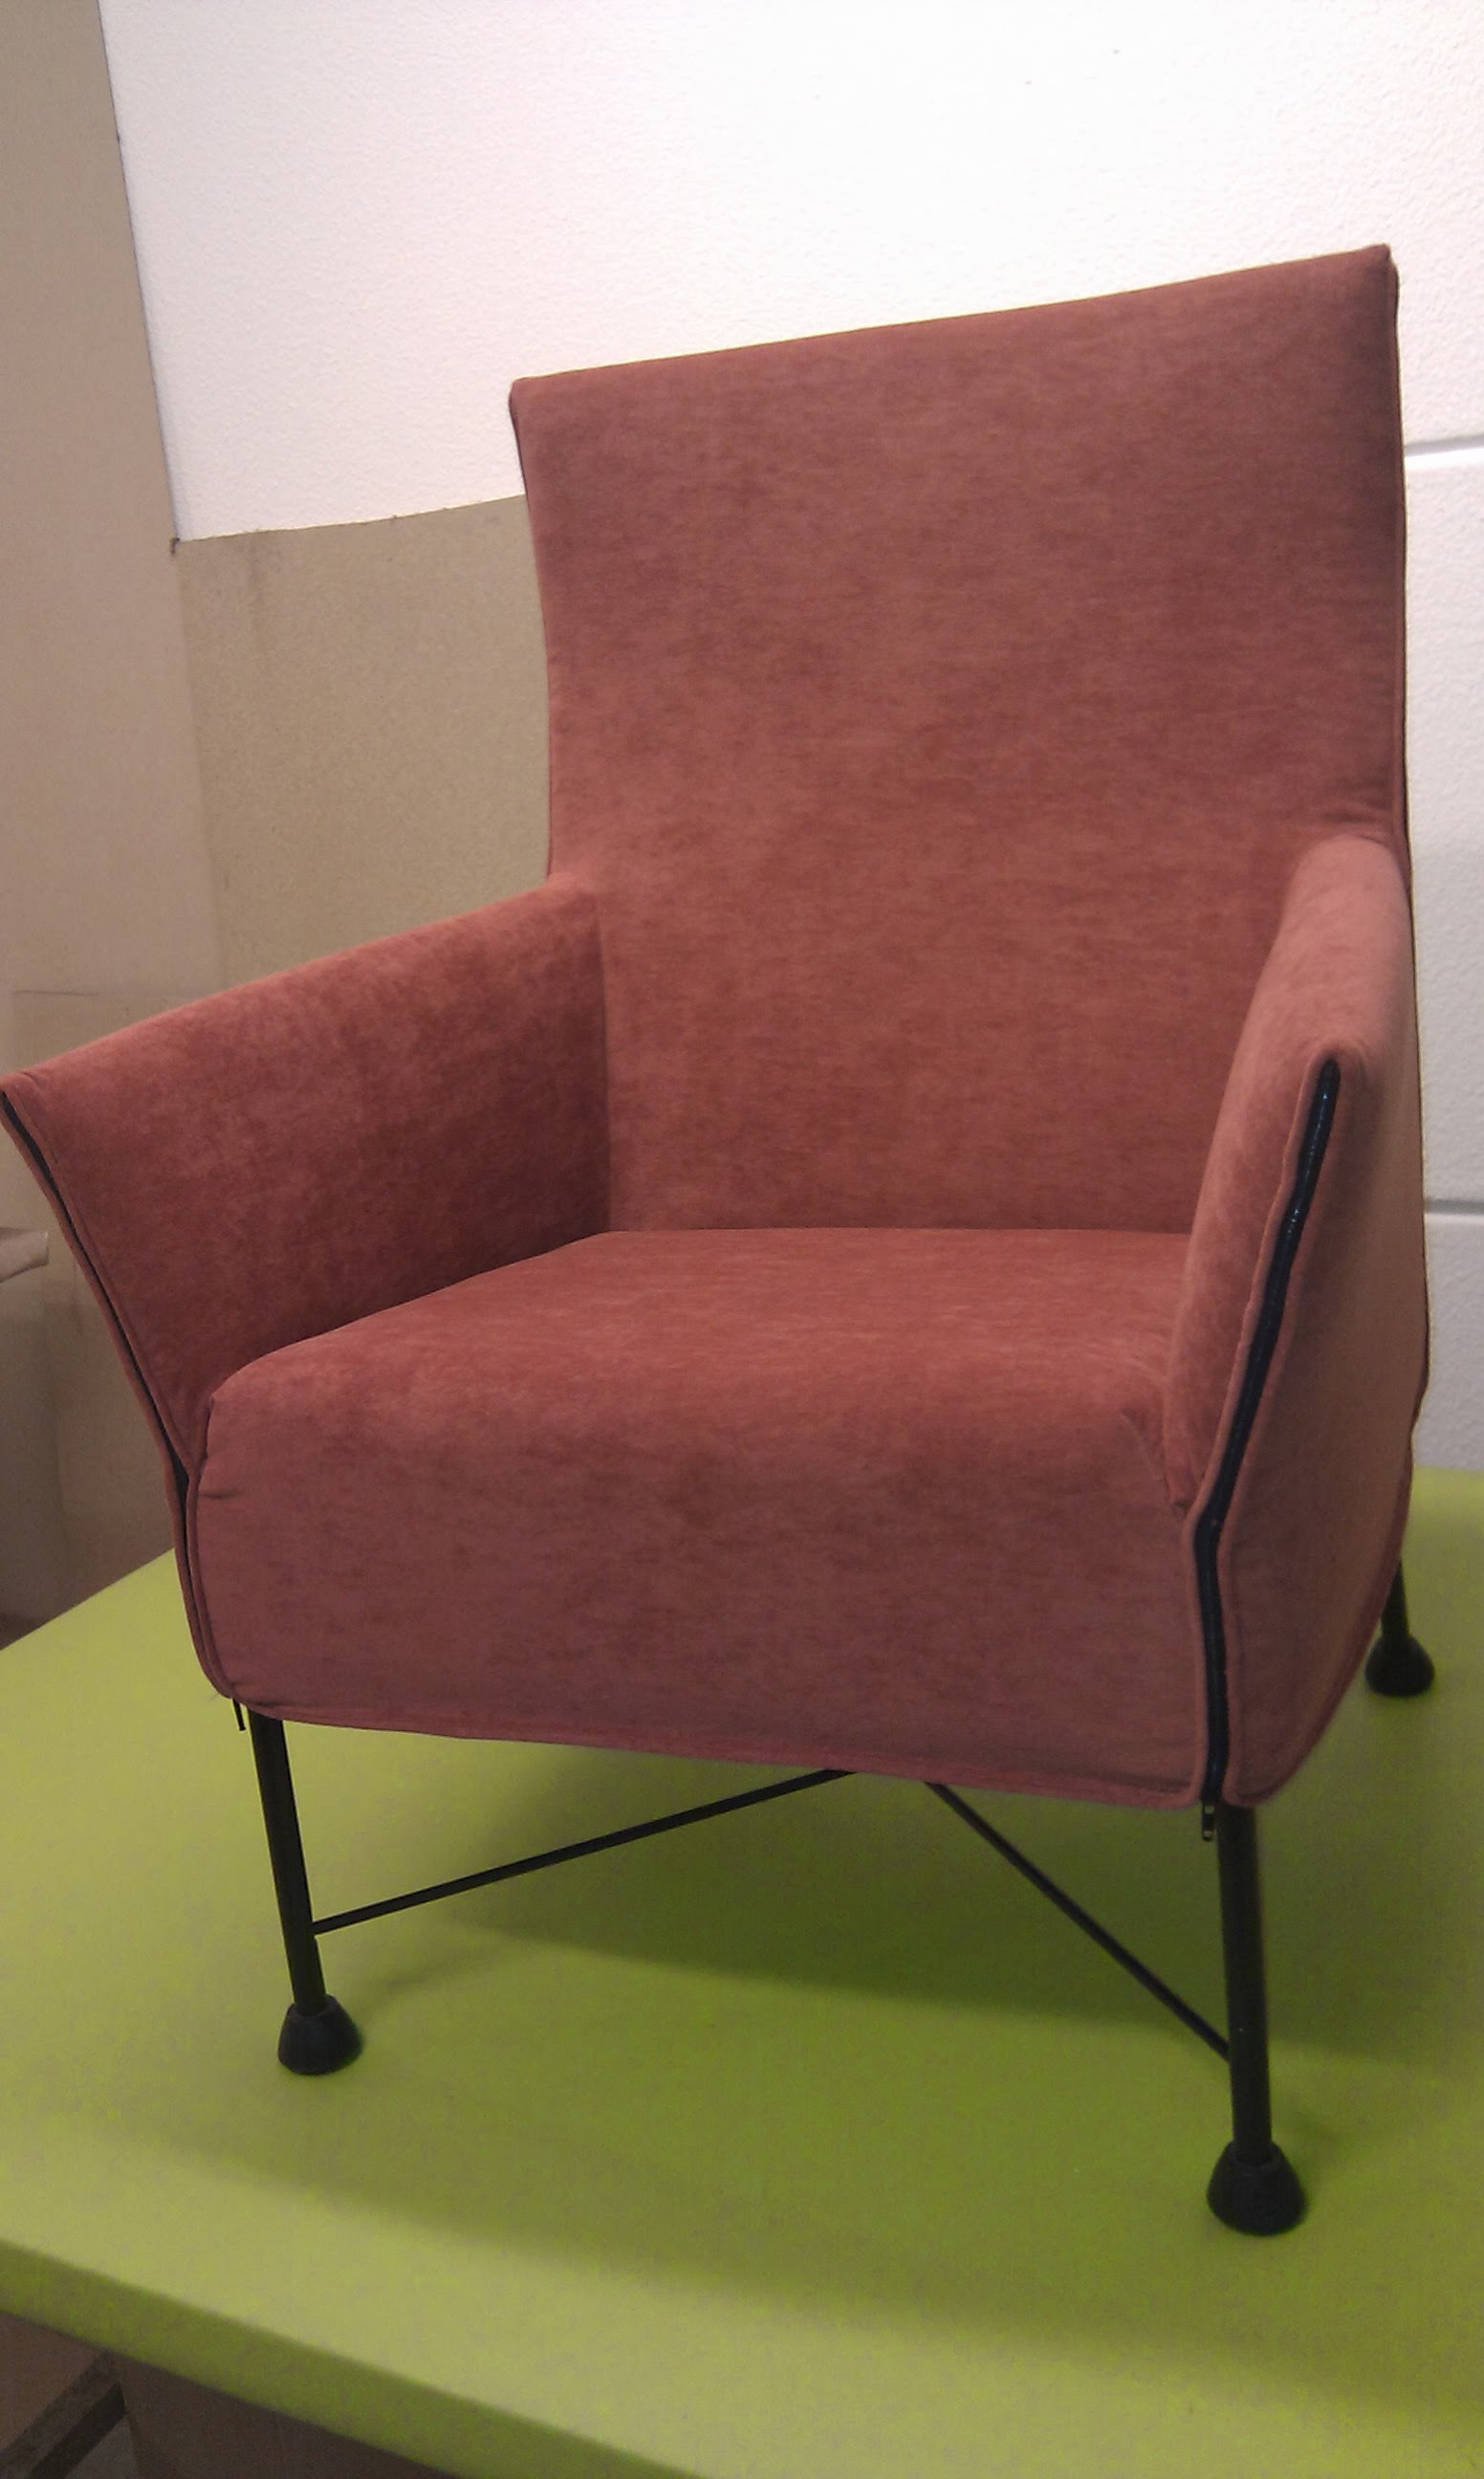 Charly Stoelen Bekleden Charly Master Design